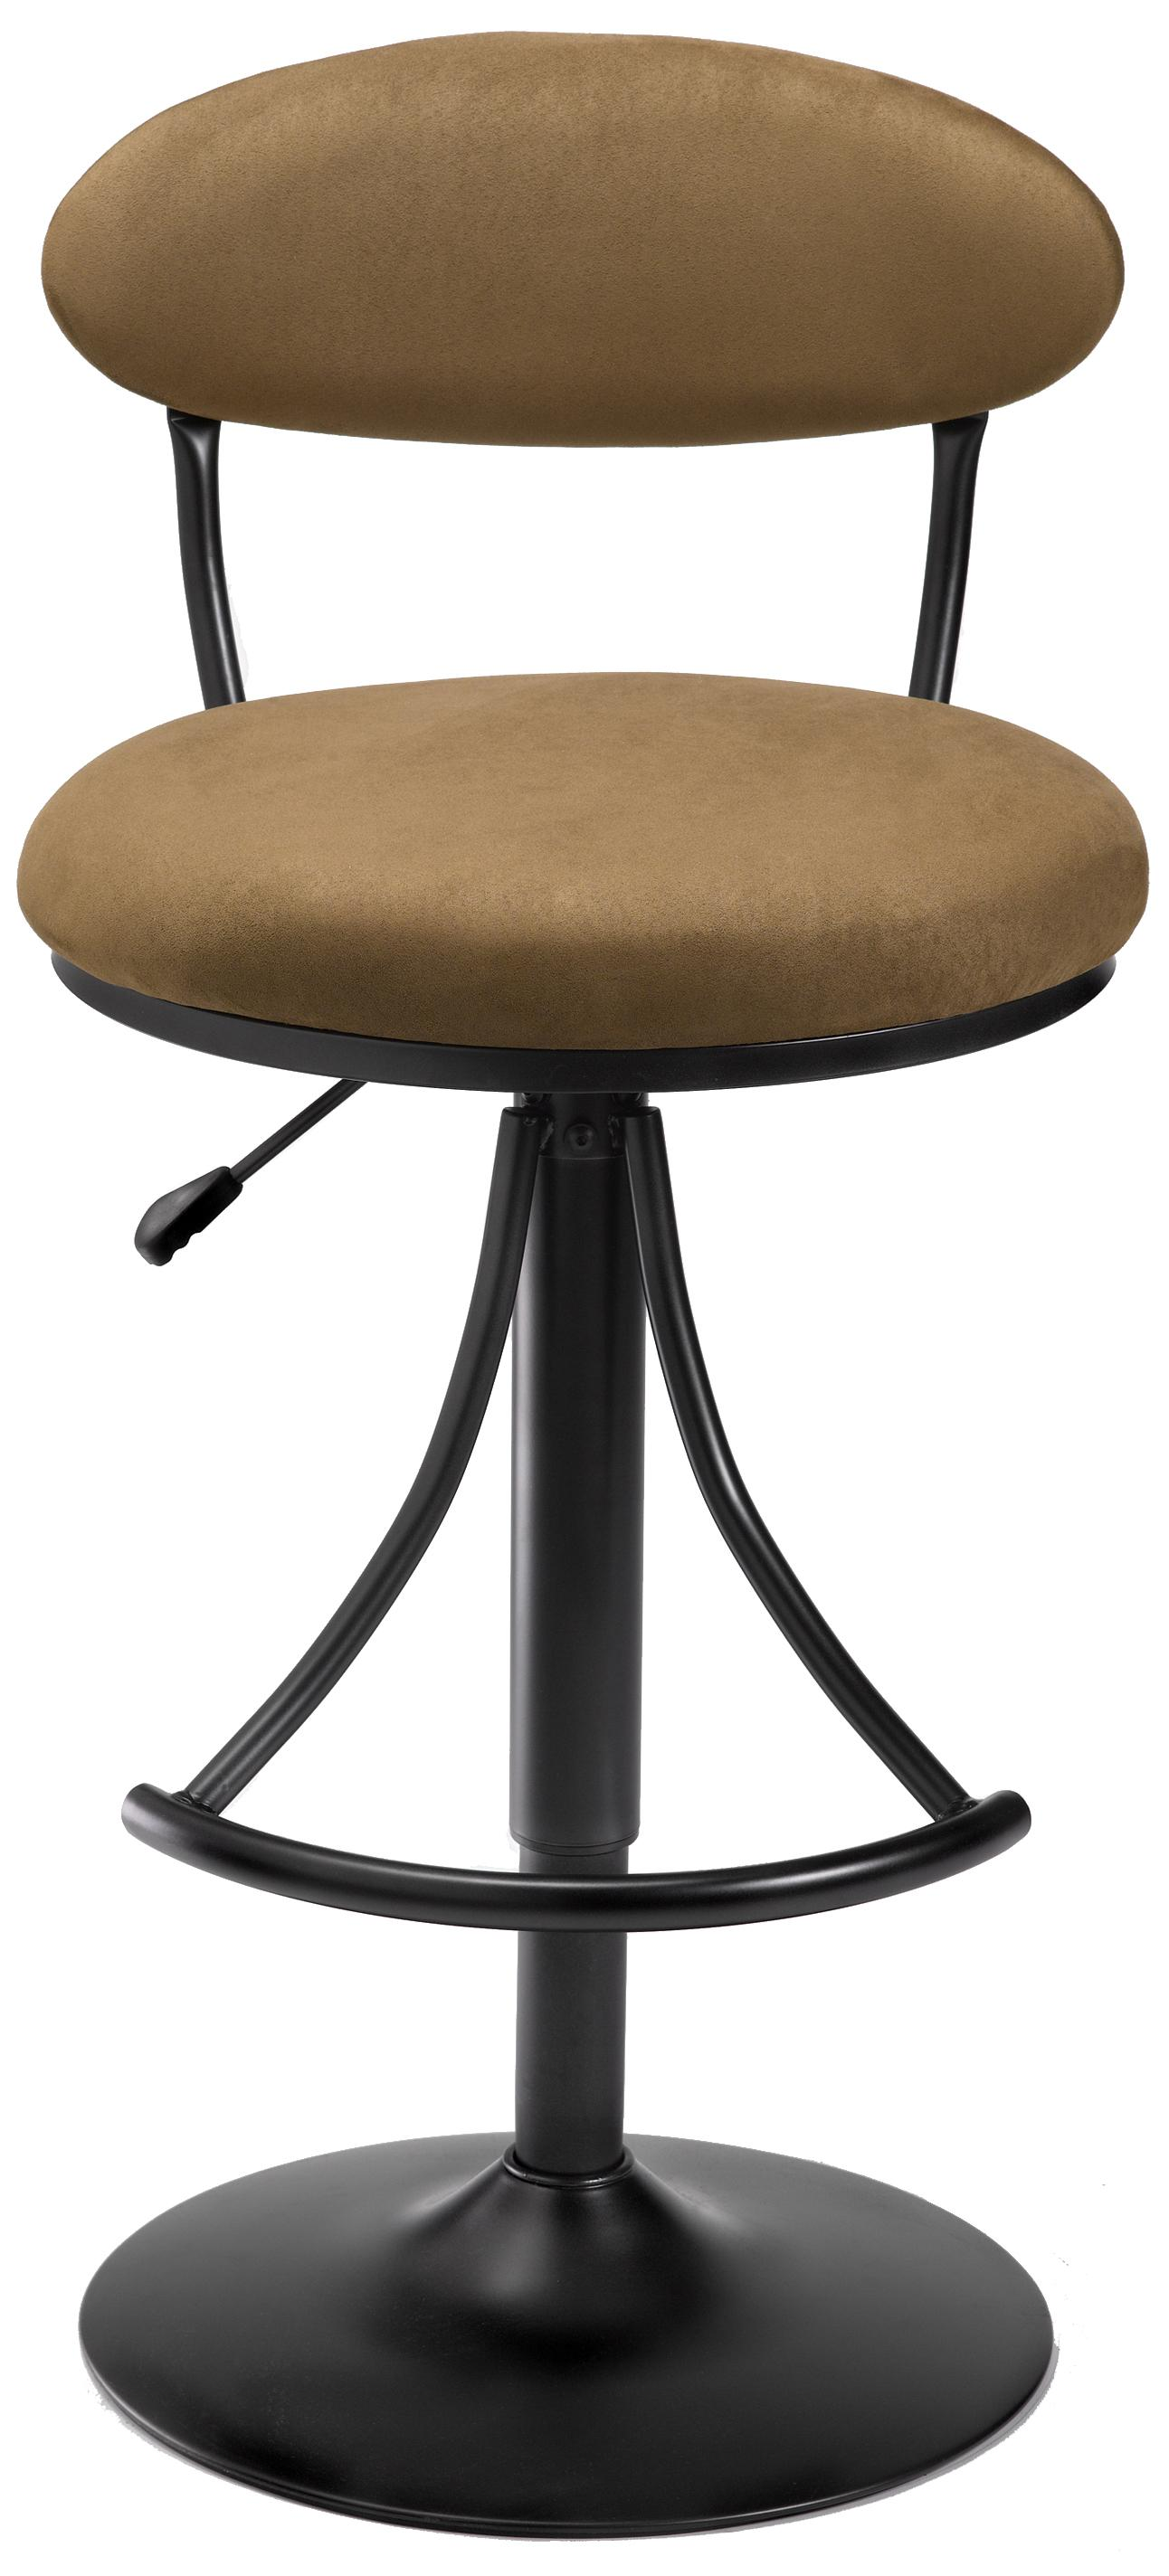 Hillsdale Metal Stools Adjustable Height Venus Swivel Stool - Item Number: 4210-831